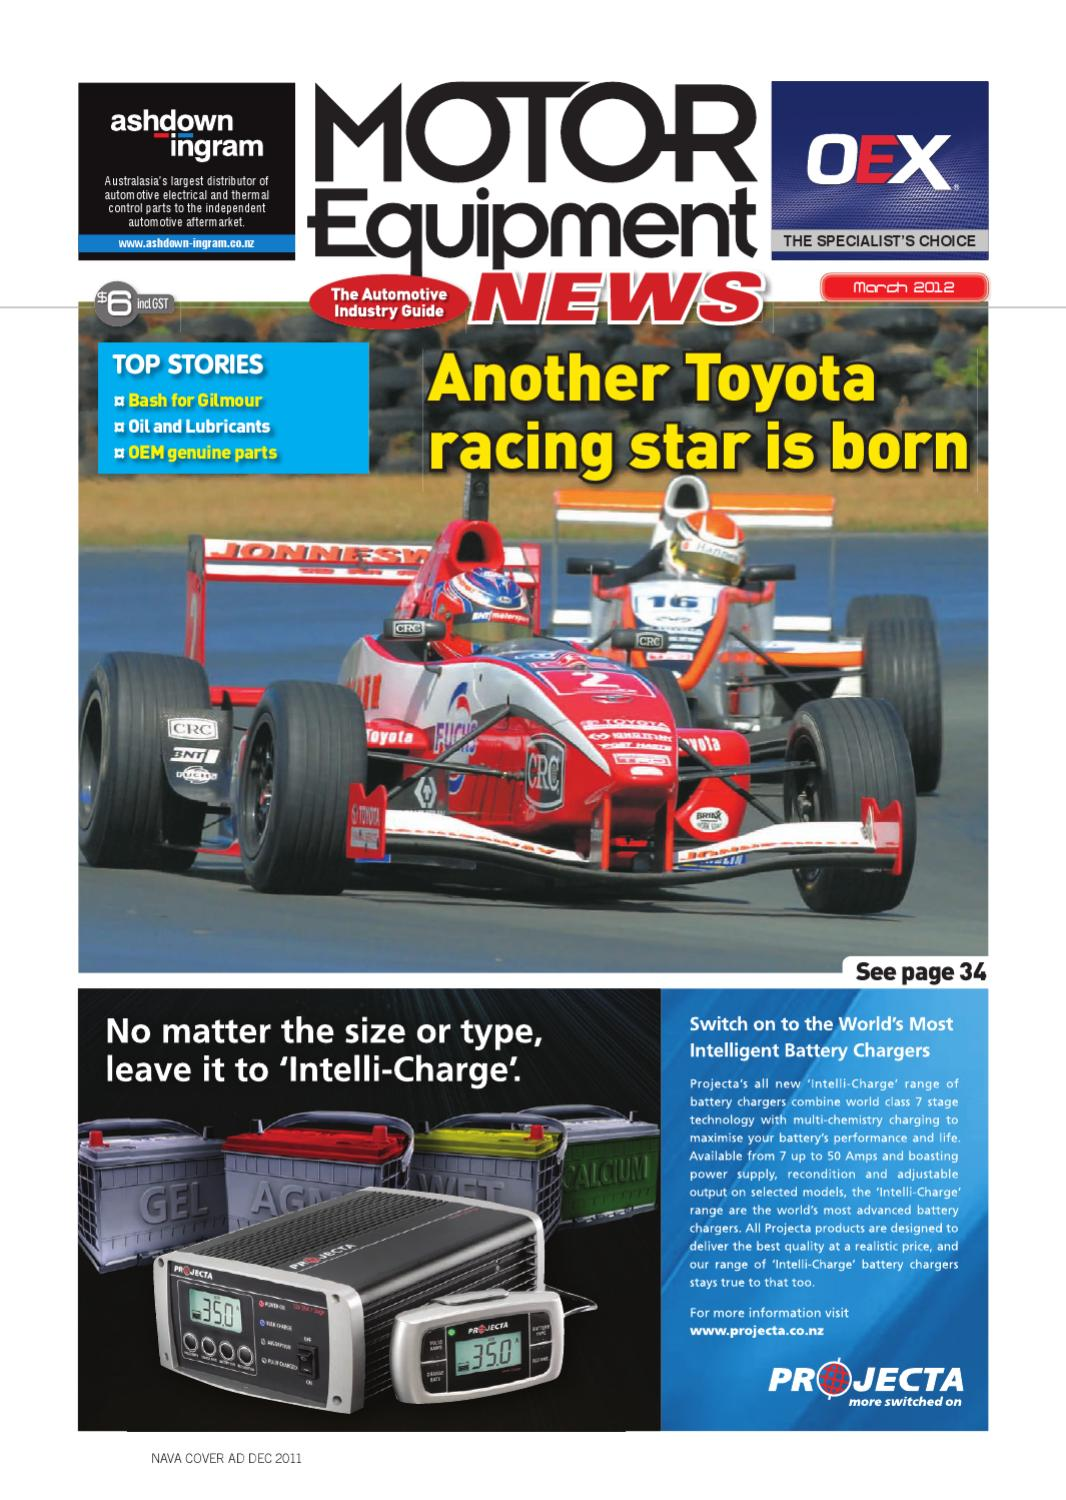 Motor Equipment News March 2012 By Adrenalin Publishing Ltd Issuu Our Delica Campervans 12v Electrical Setup